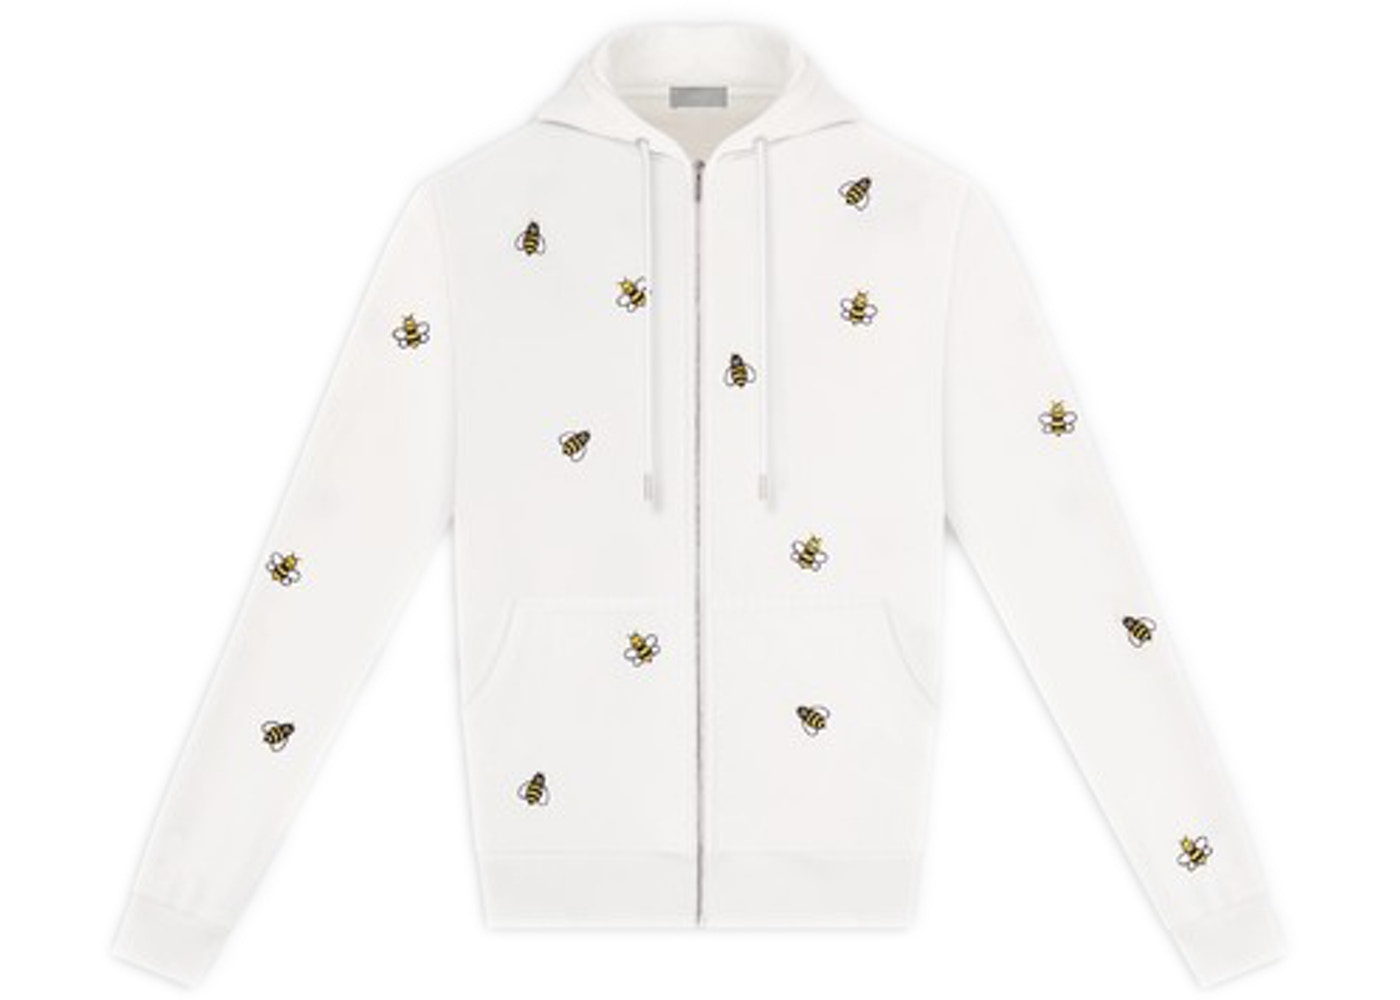 975ec842 Sell. or Ask. Size L. View All Bids. KAWS x Dior Embroidered Bees Zip Up  Sweatshirt White